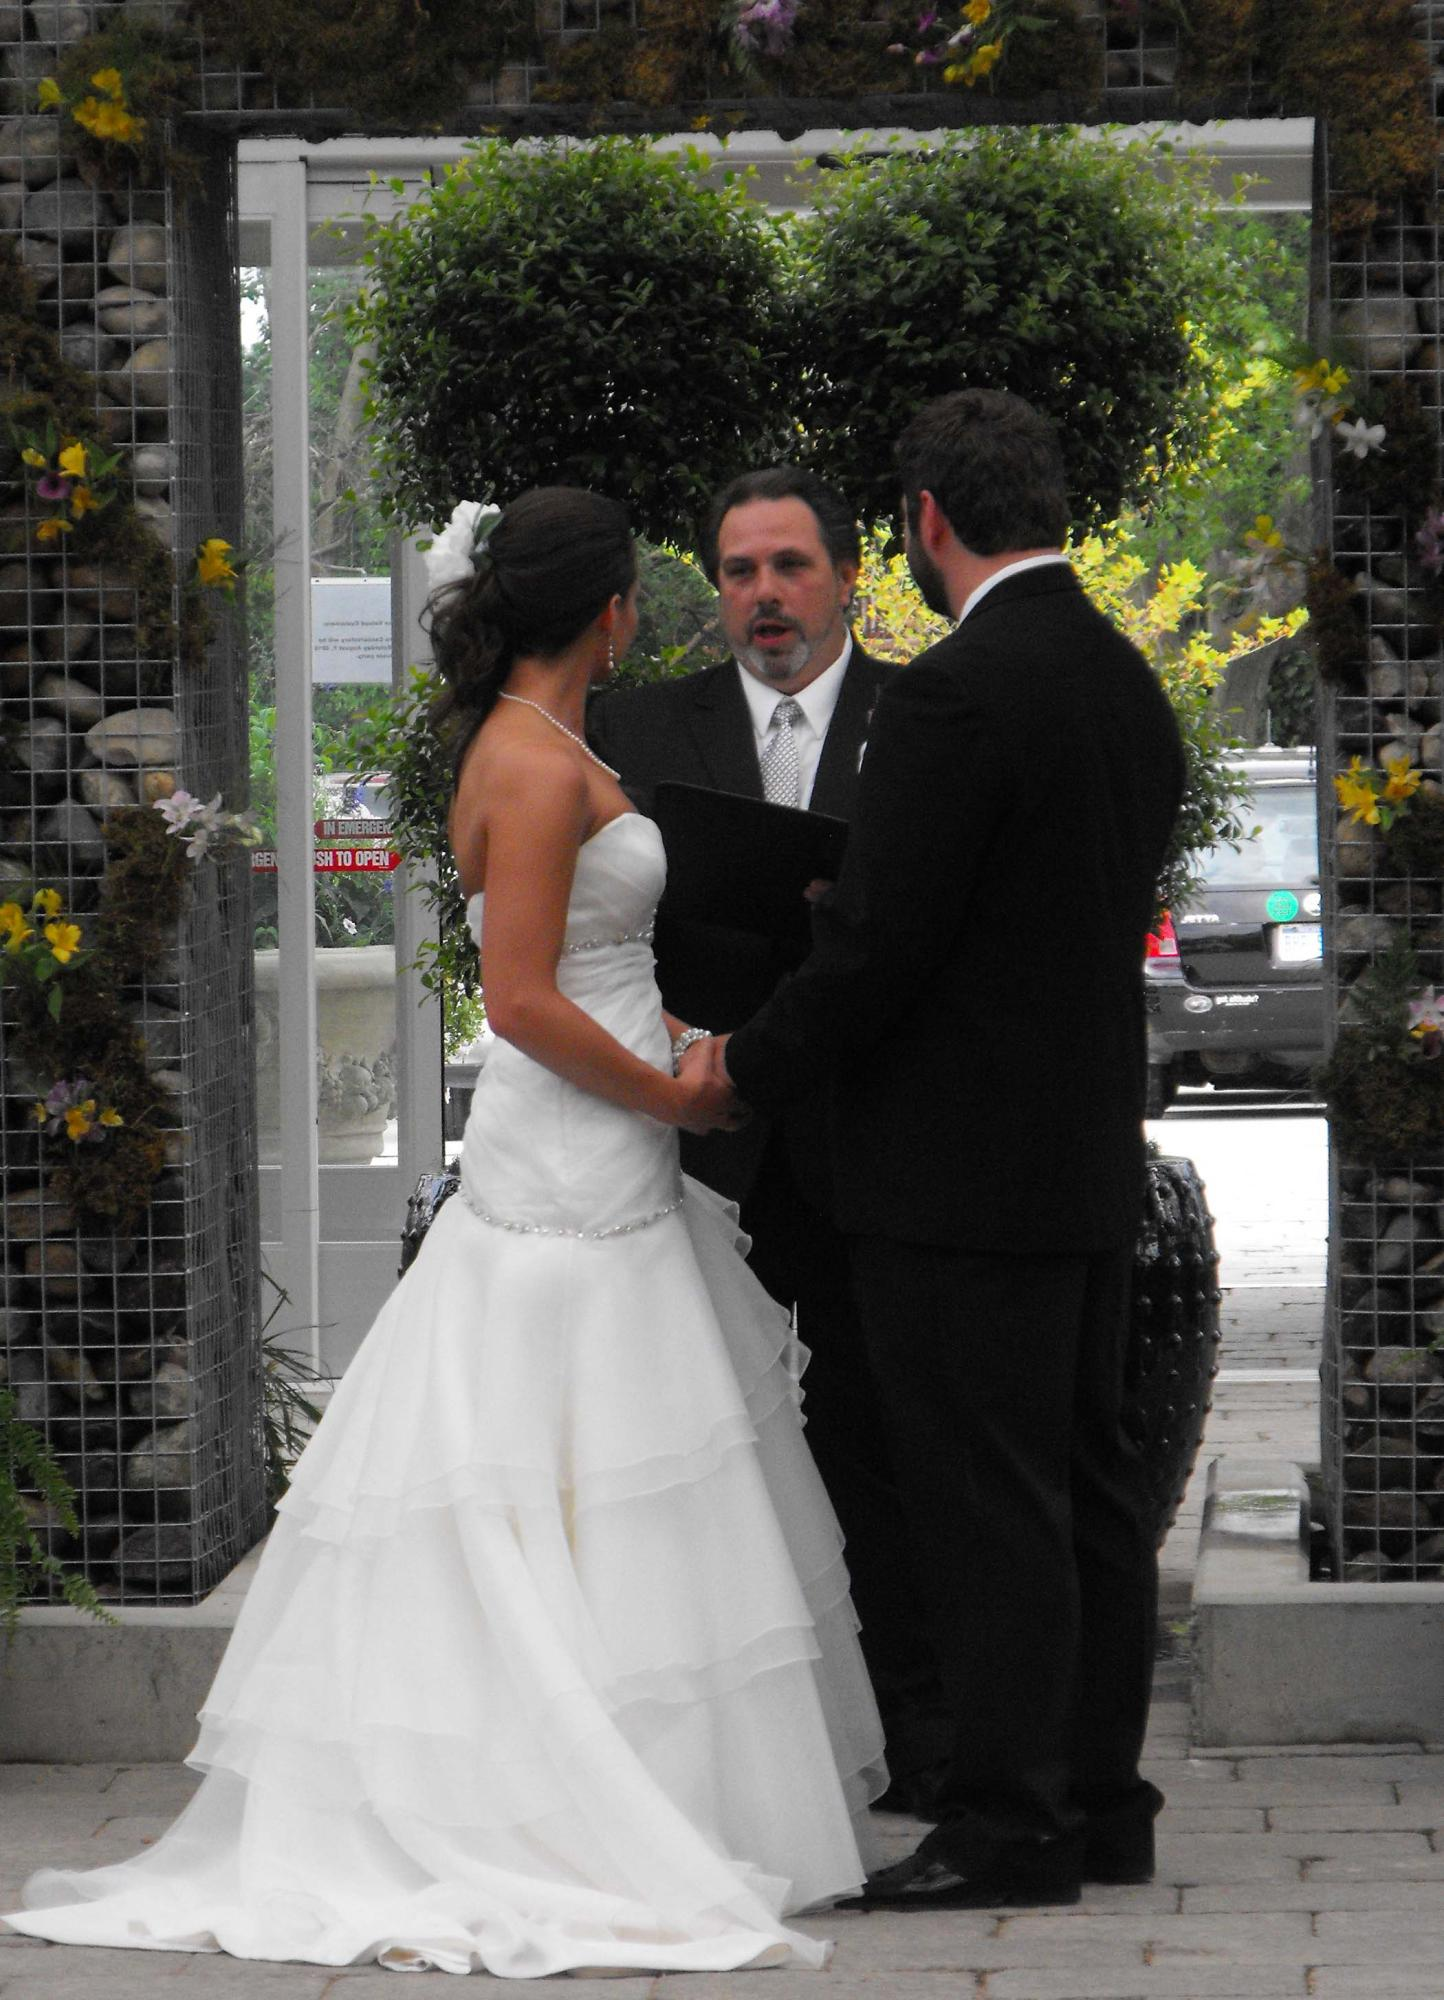 Michigan wedding officiant requirements